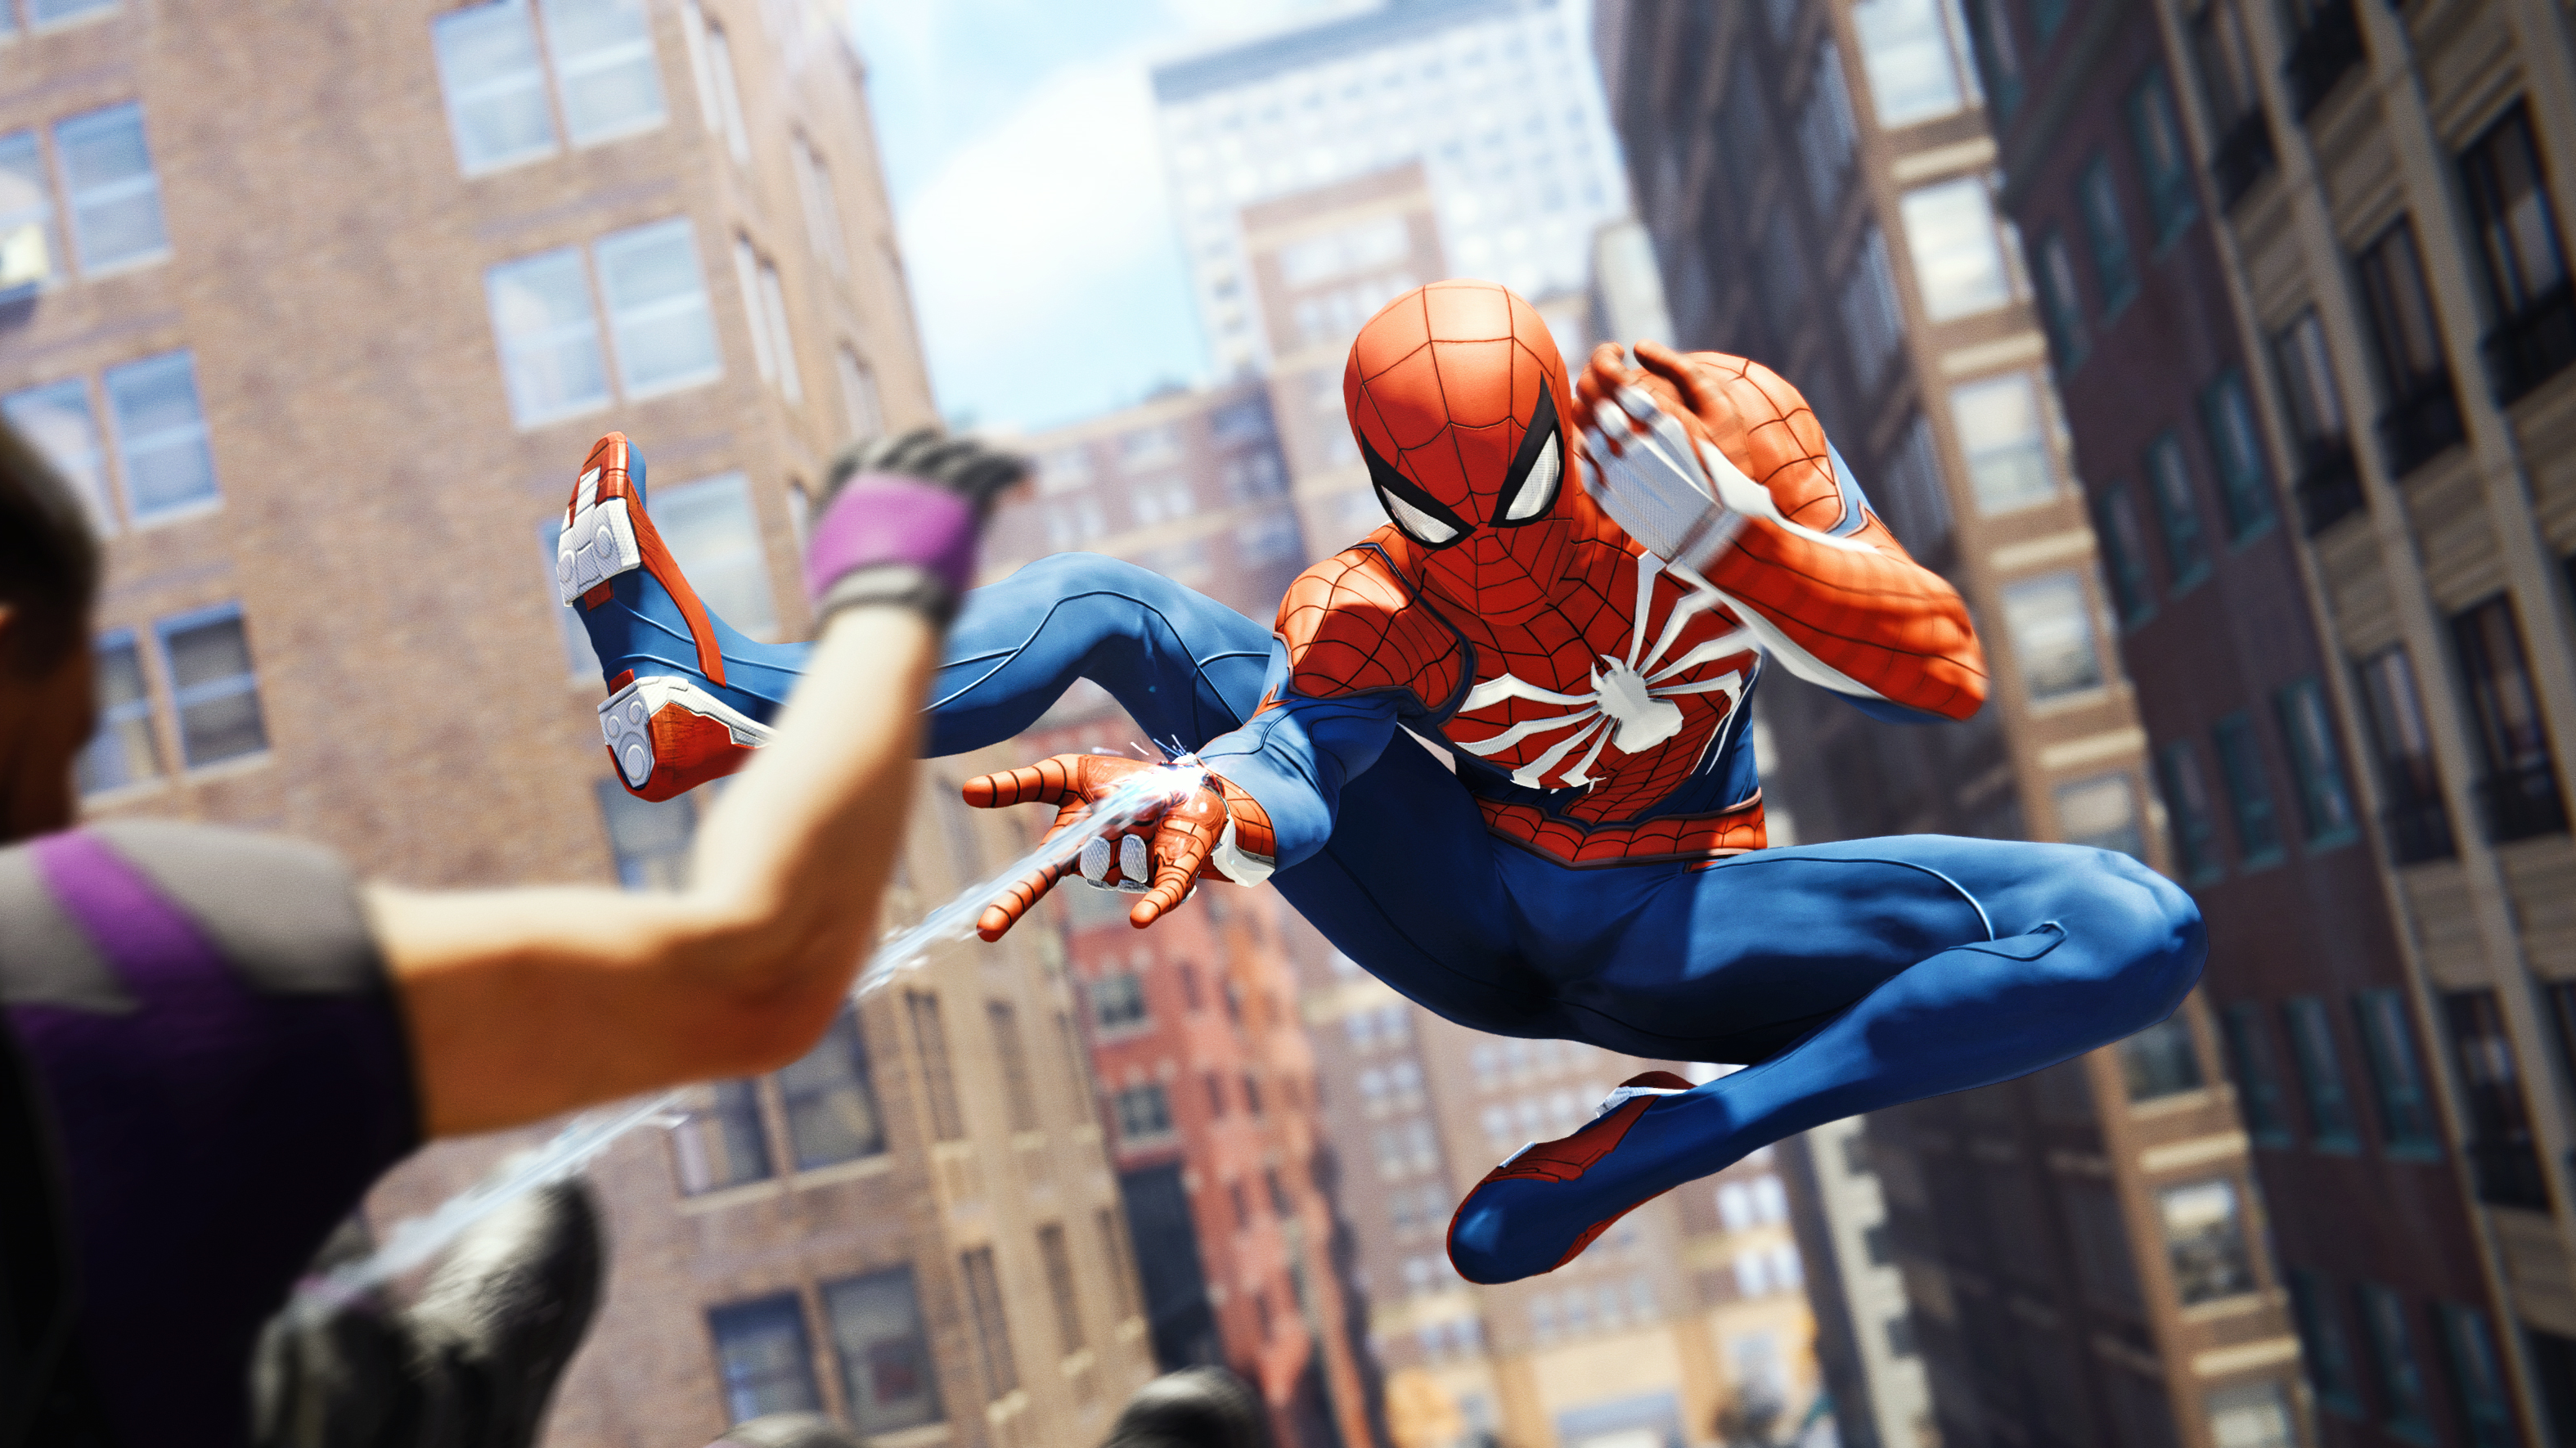 Tips For Playing Spider-Man